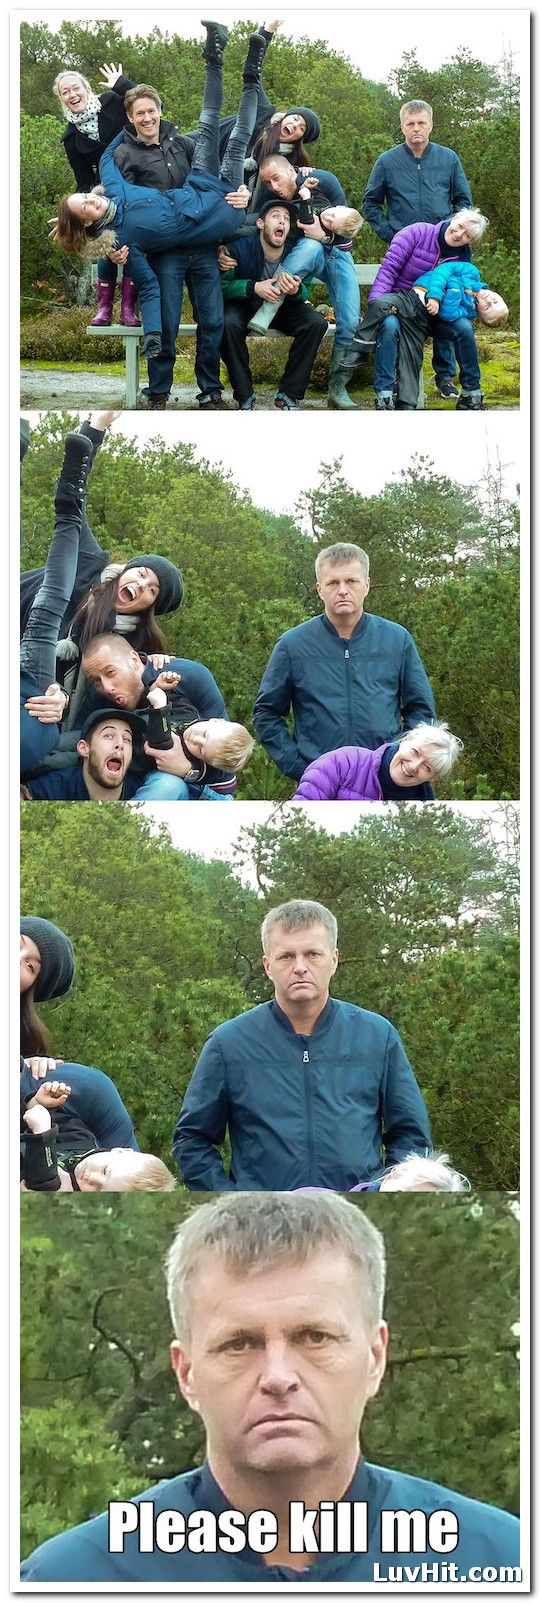 Come on, dad One silly one! 19 Family Photos Gone Wrong very Very Wrong